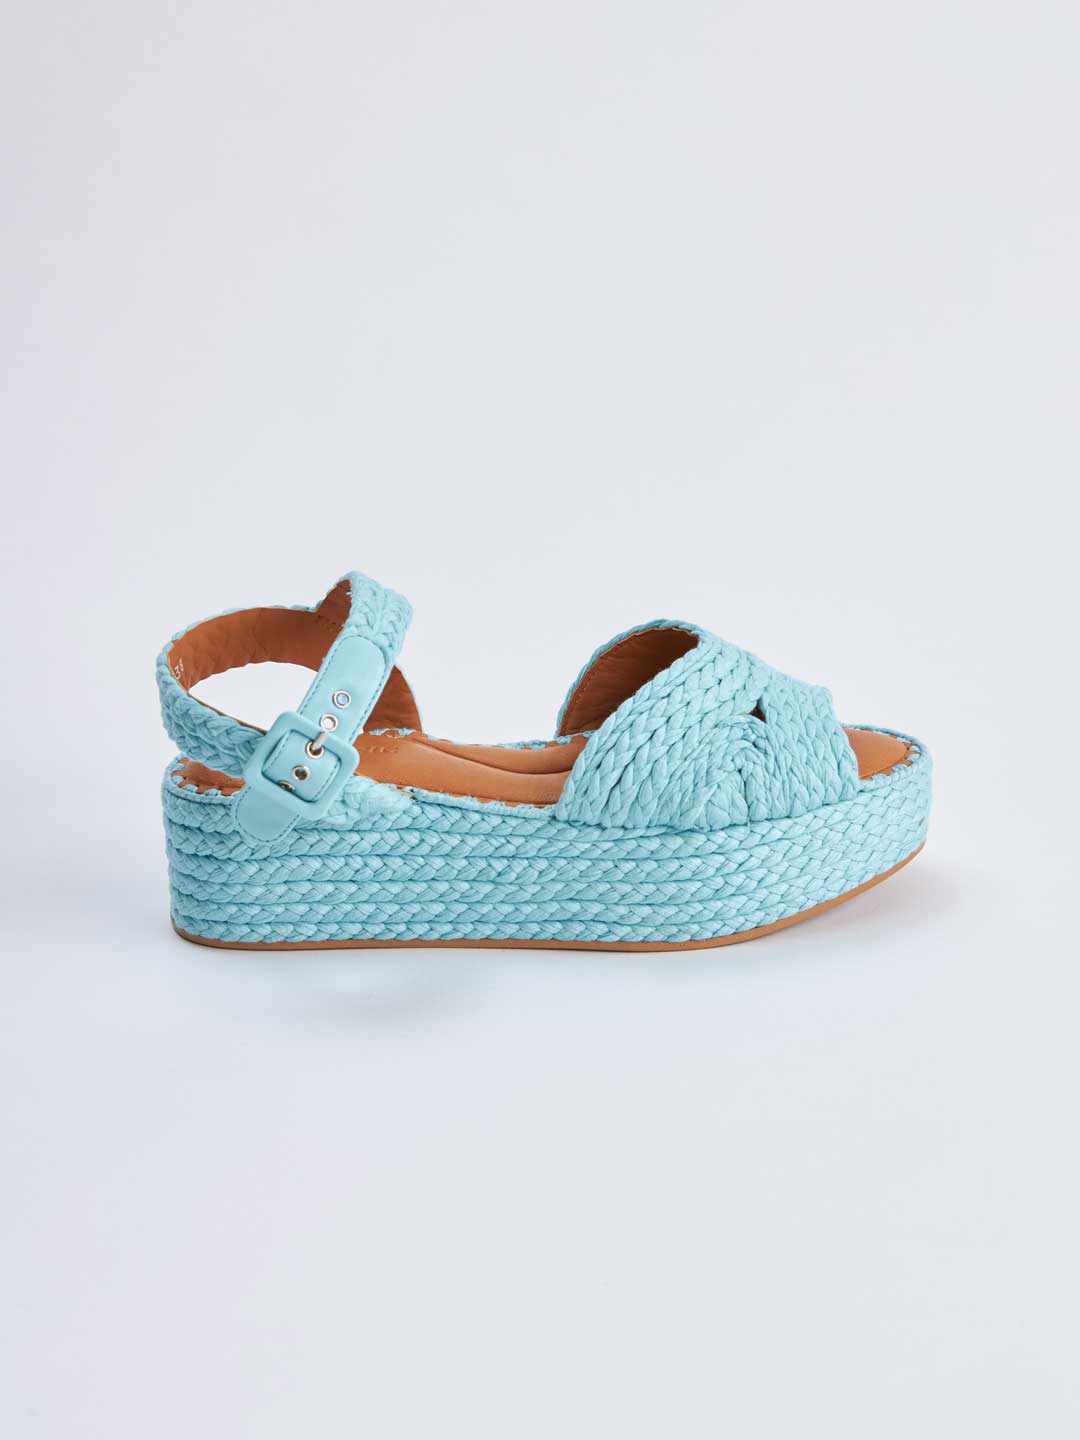 ALDA Ankle Strap Cotton Sandals - Light Blue